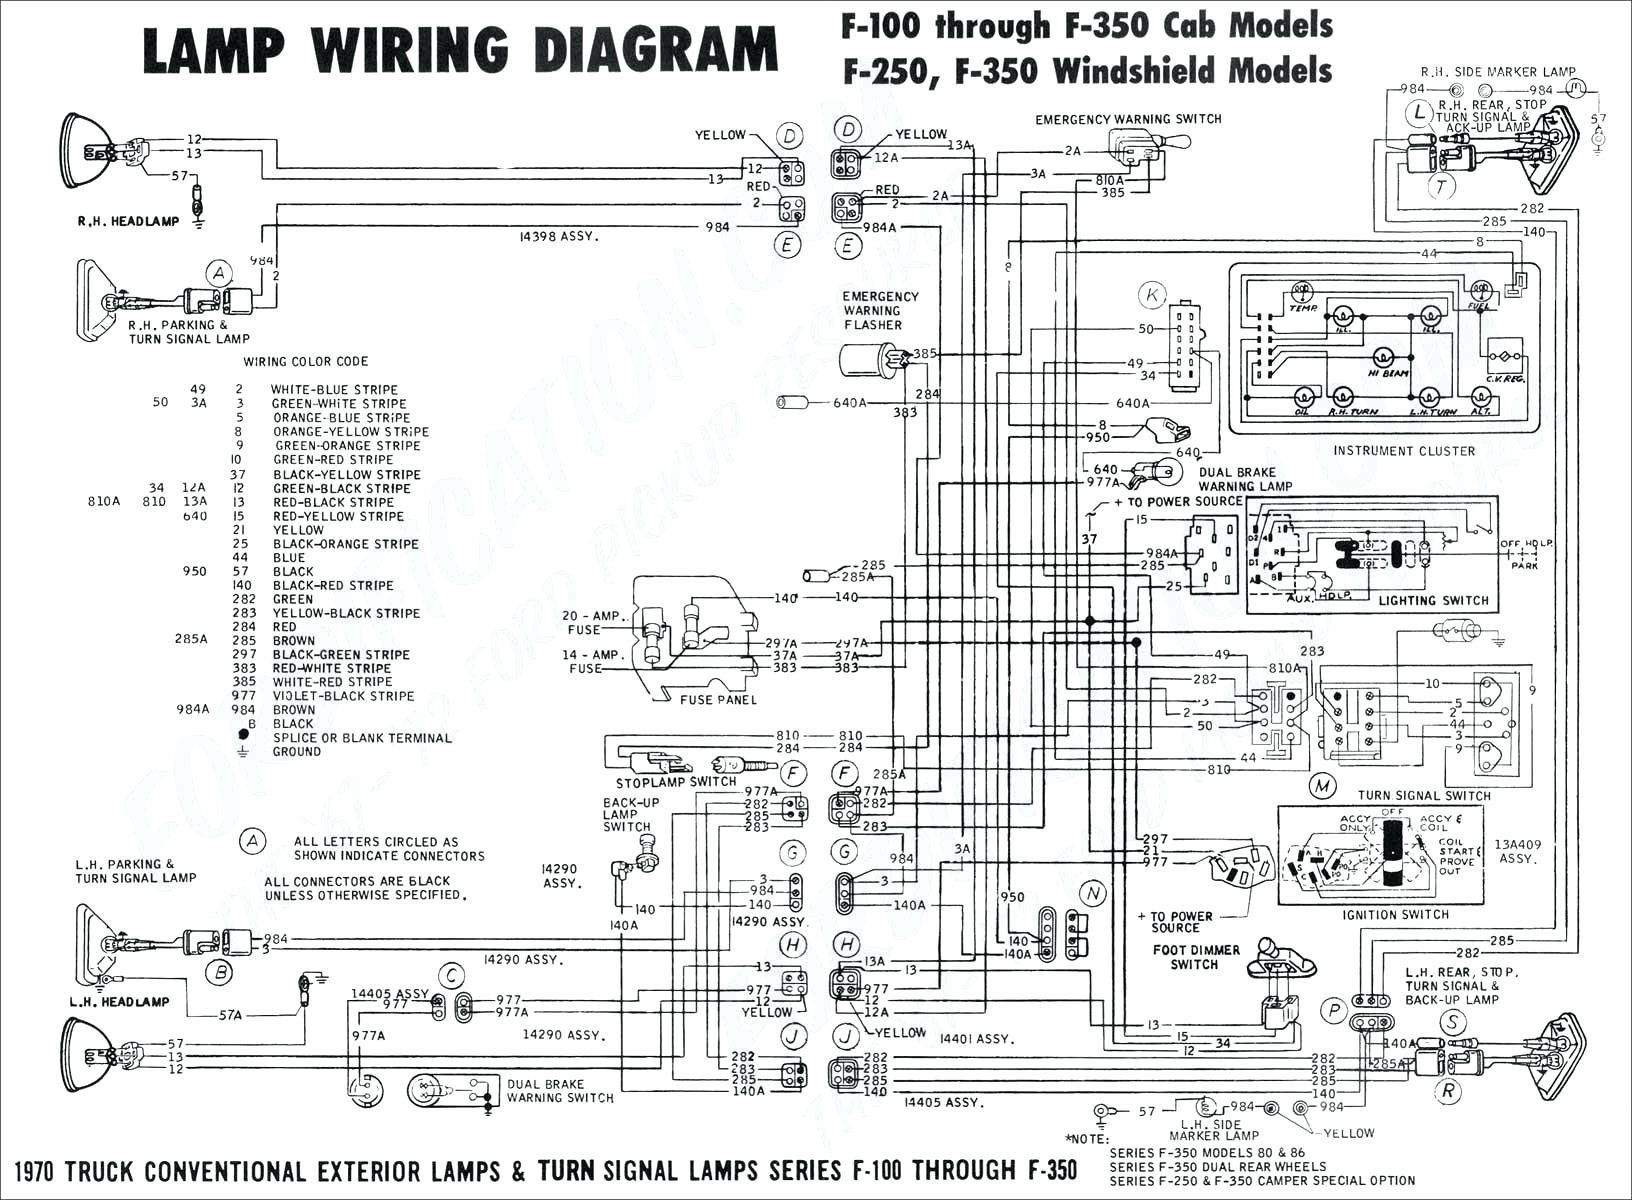 2004 Chevy Tail Light Electrical Diagram Pool Light Wiring Diagram Of 2004 Chevy Tail Light Electrical Diagram